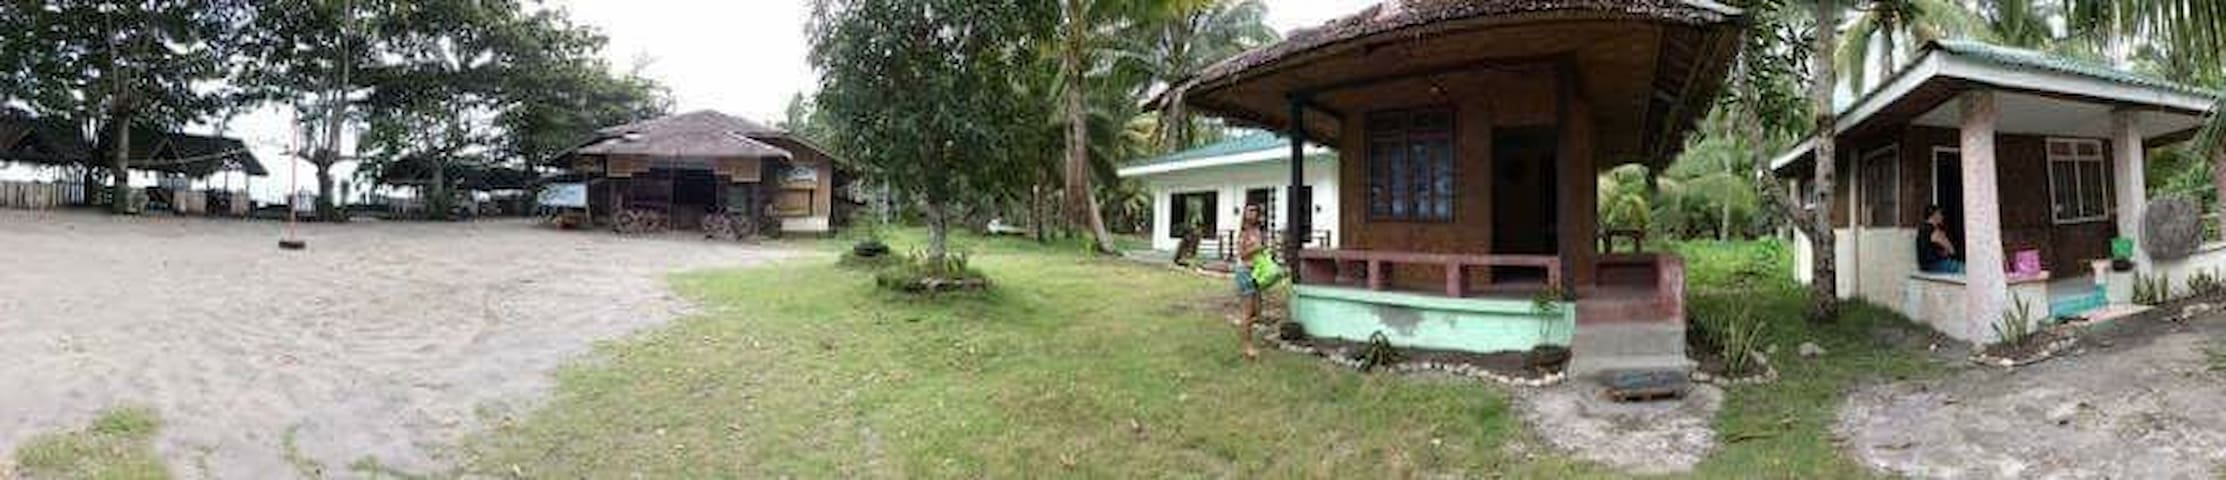 Morzant beach resort Beach house. - Lianga - Casa